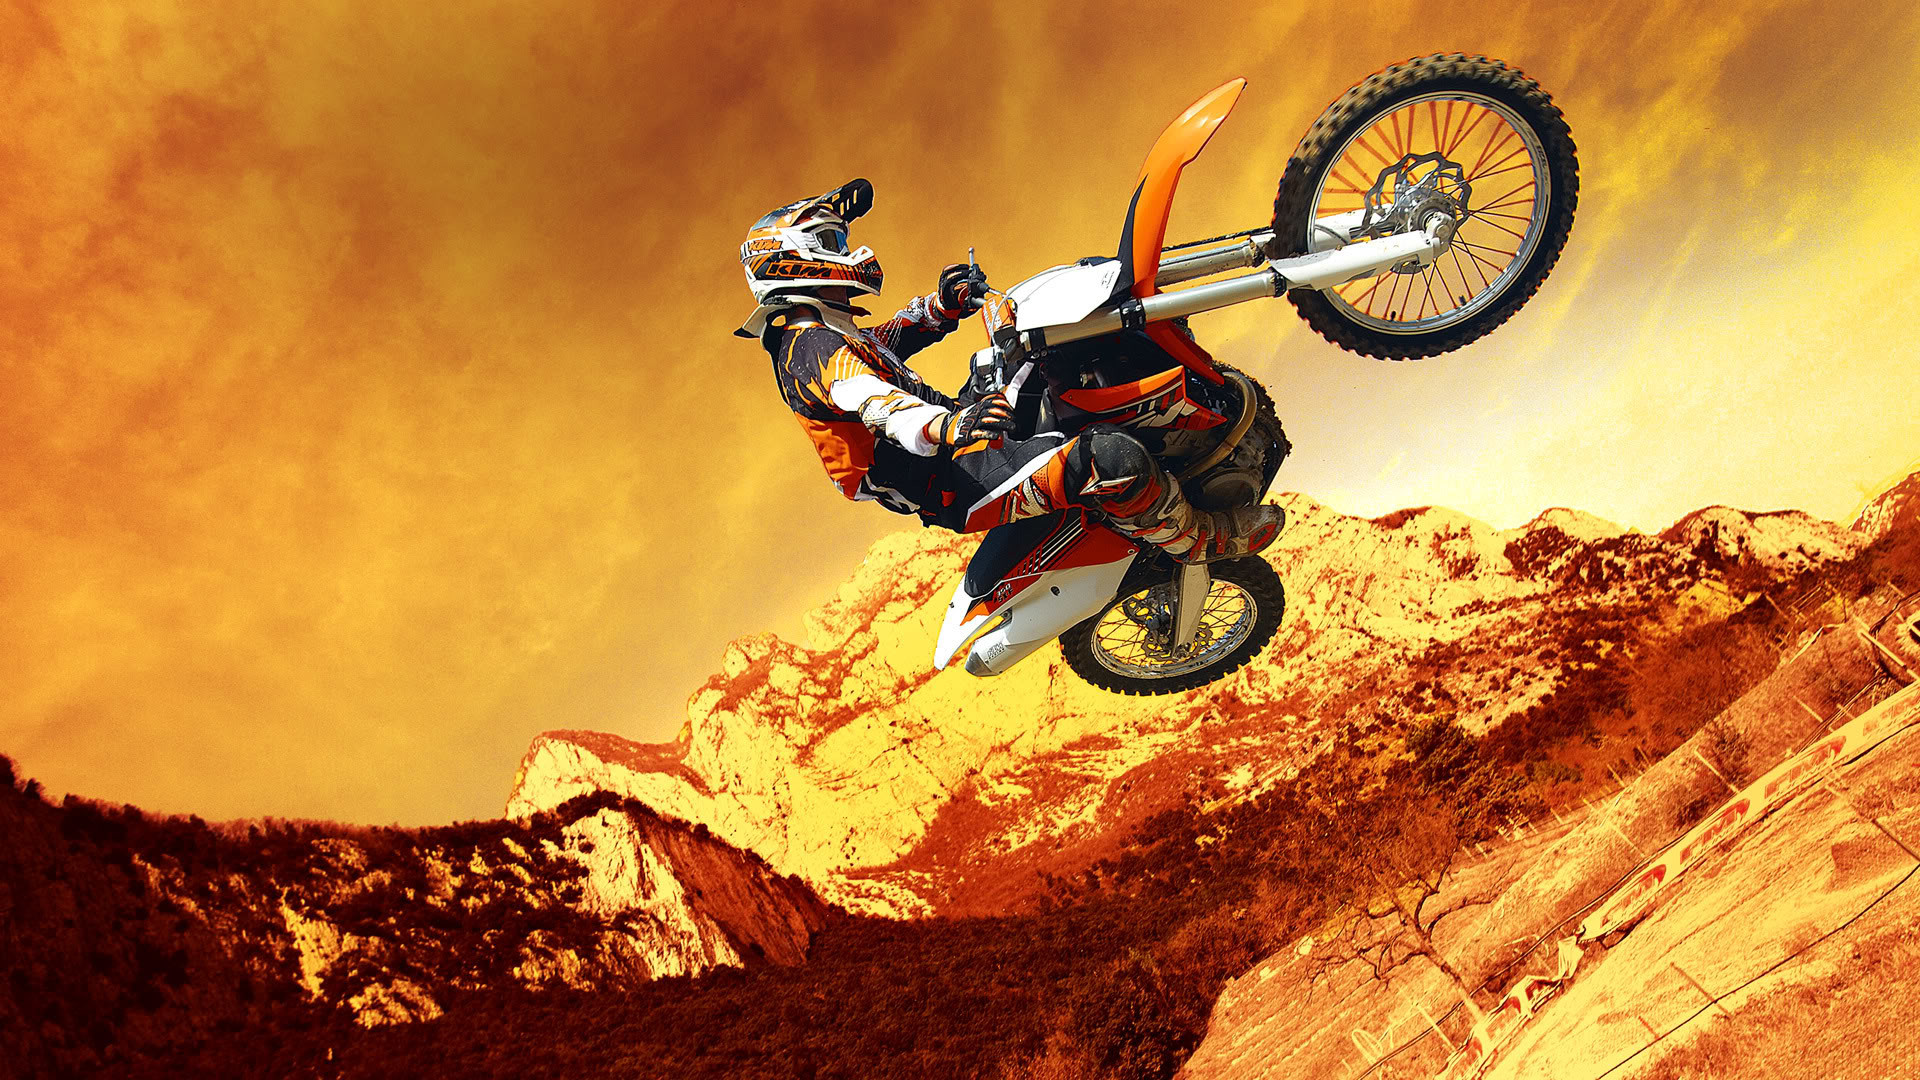 1920x1080  KTM Wallpapers 17 - 1920 X 1080